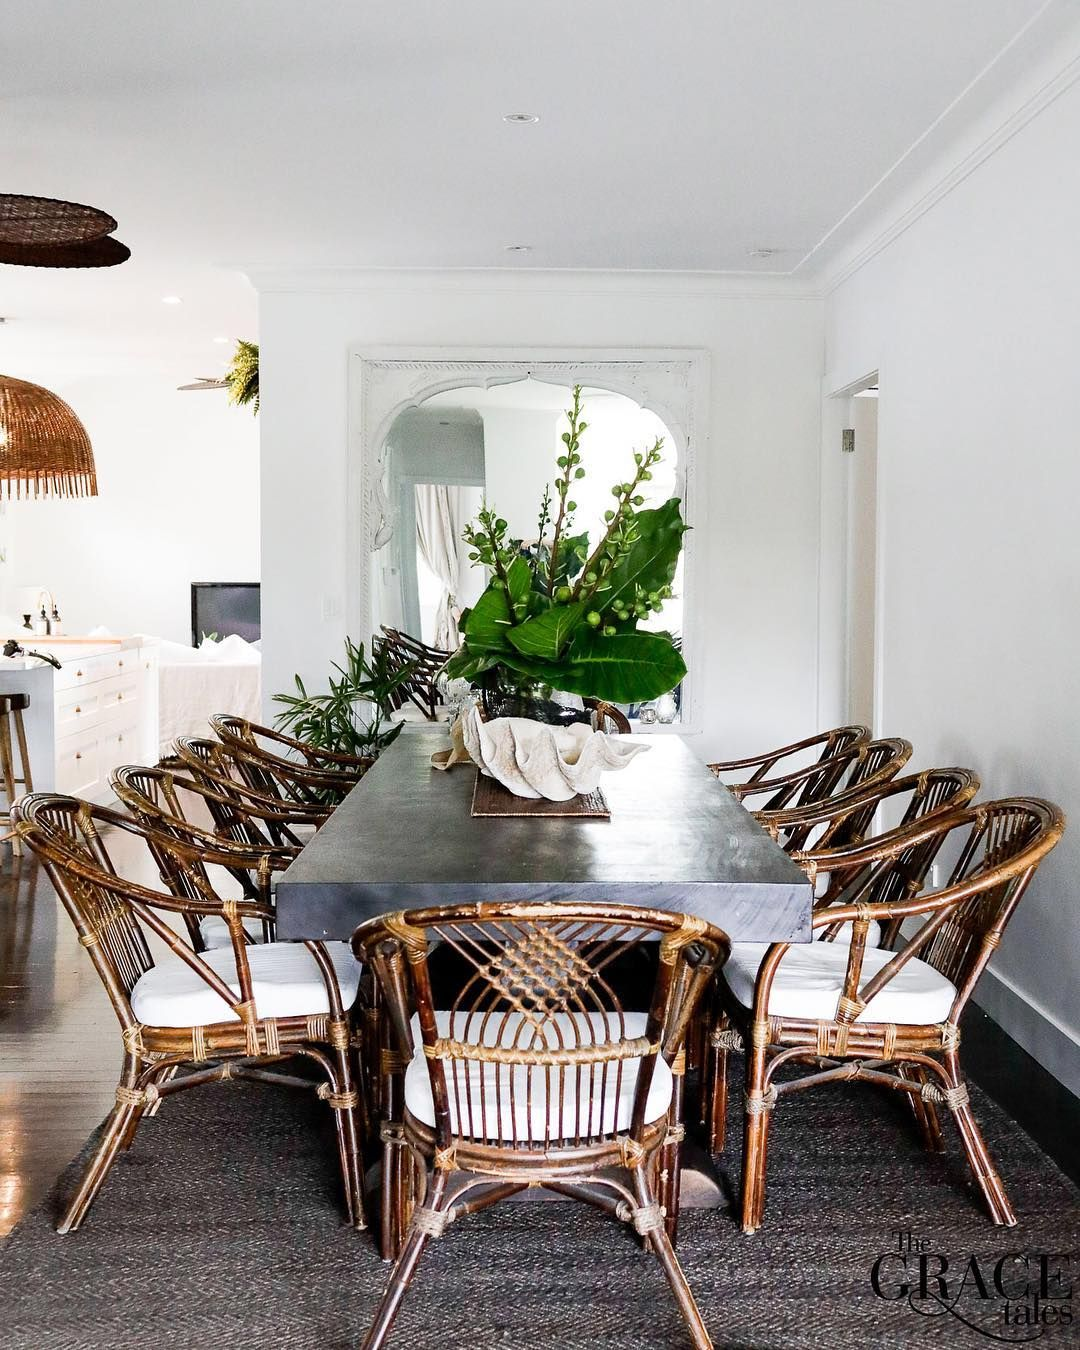 Pin by Juliana on interior home | Pinterest | Interiors and Colonial